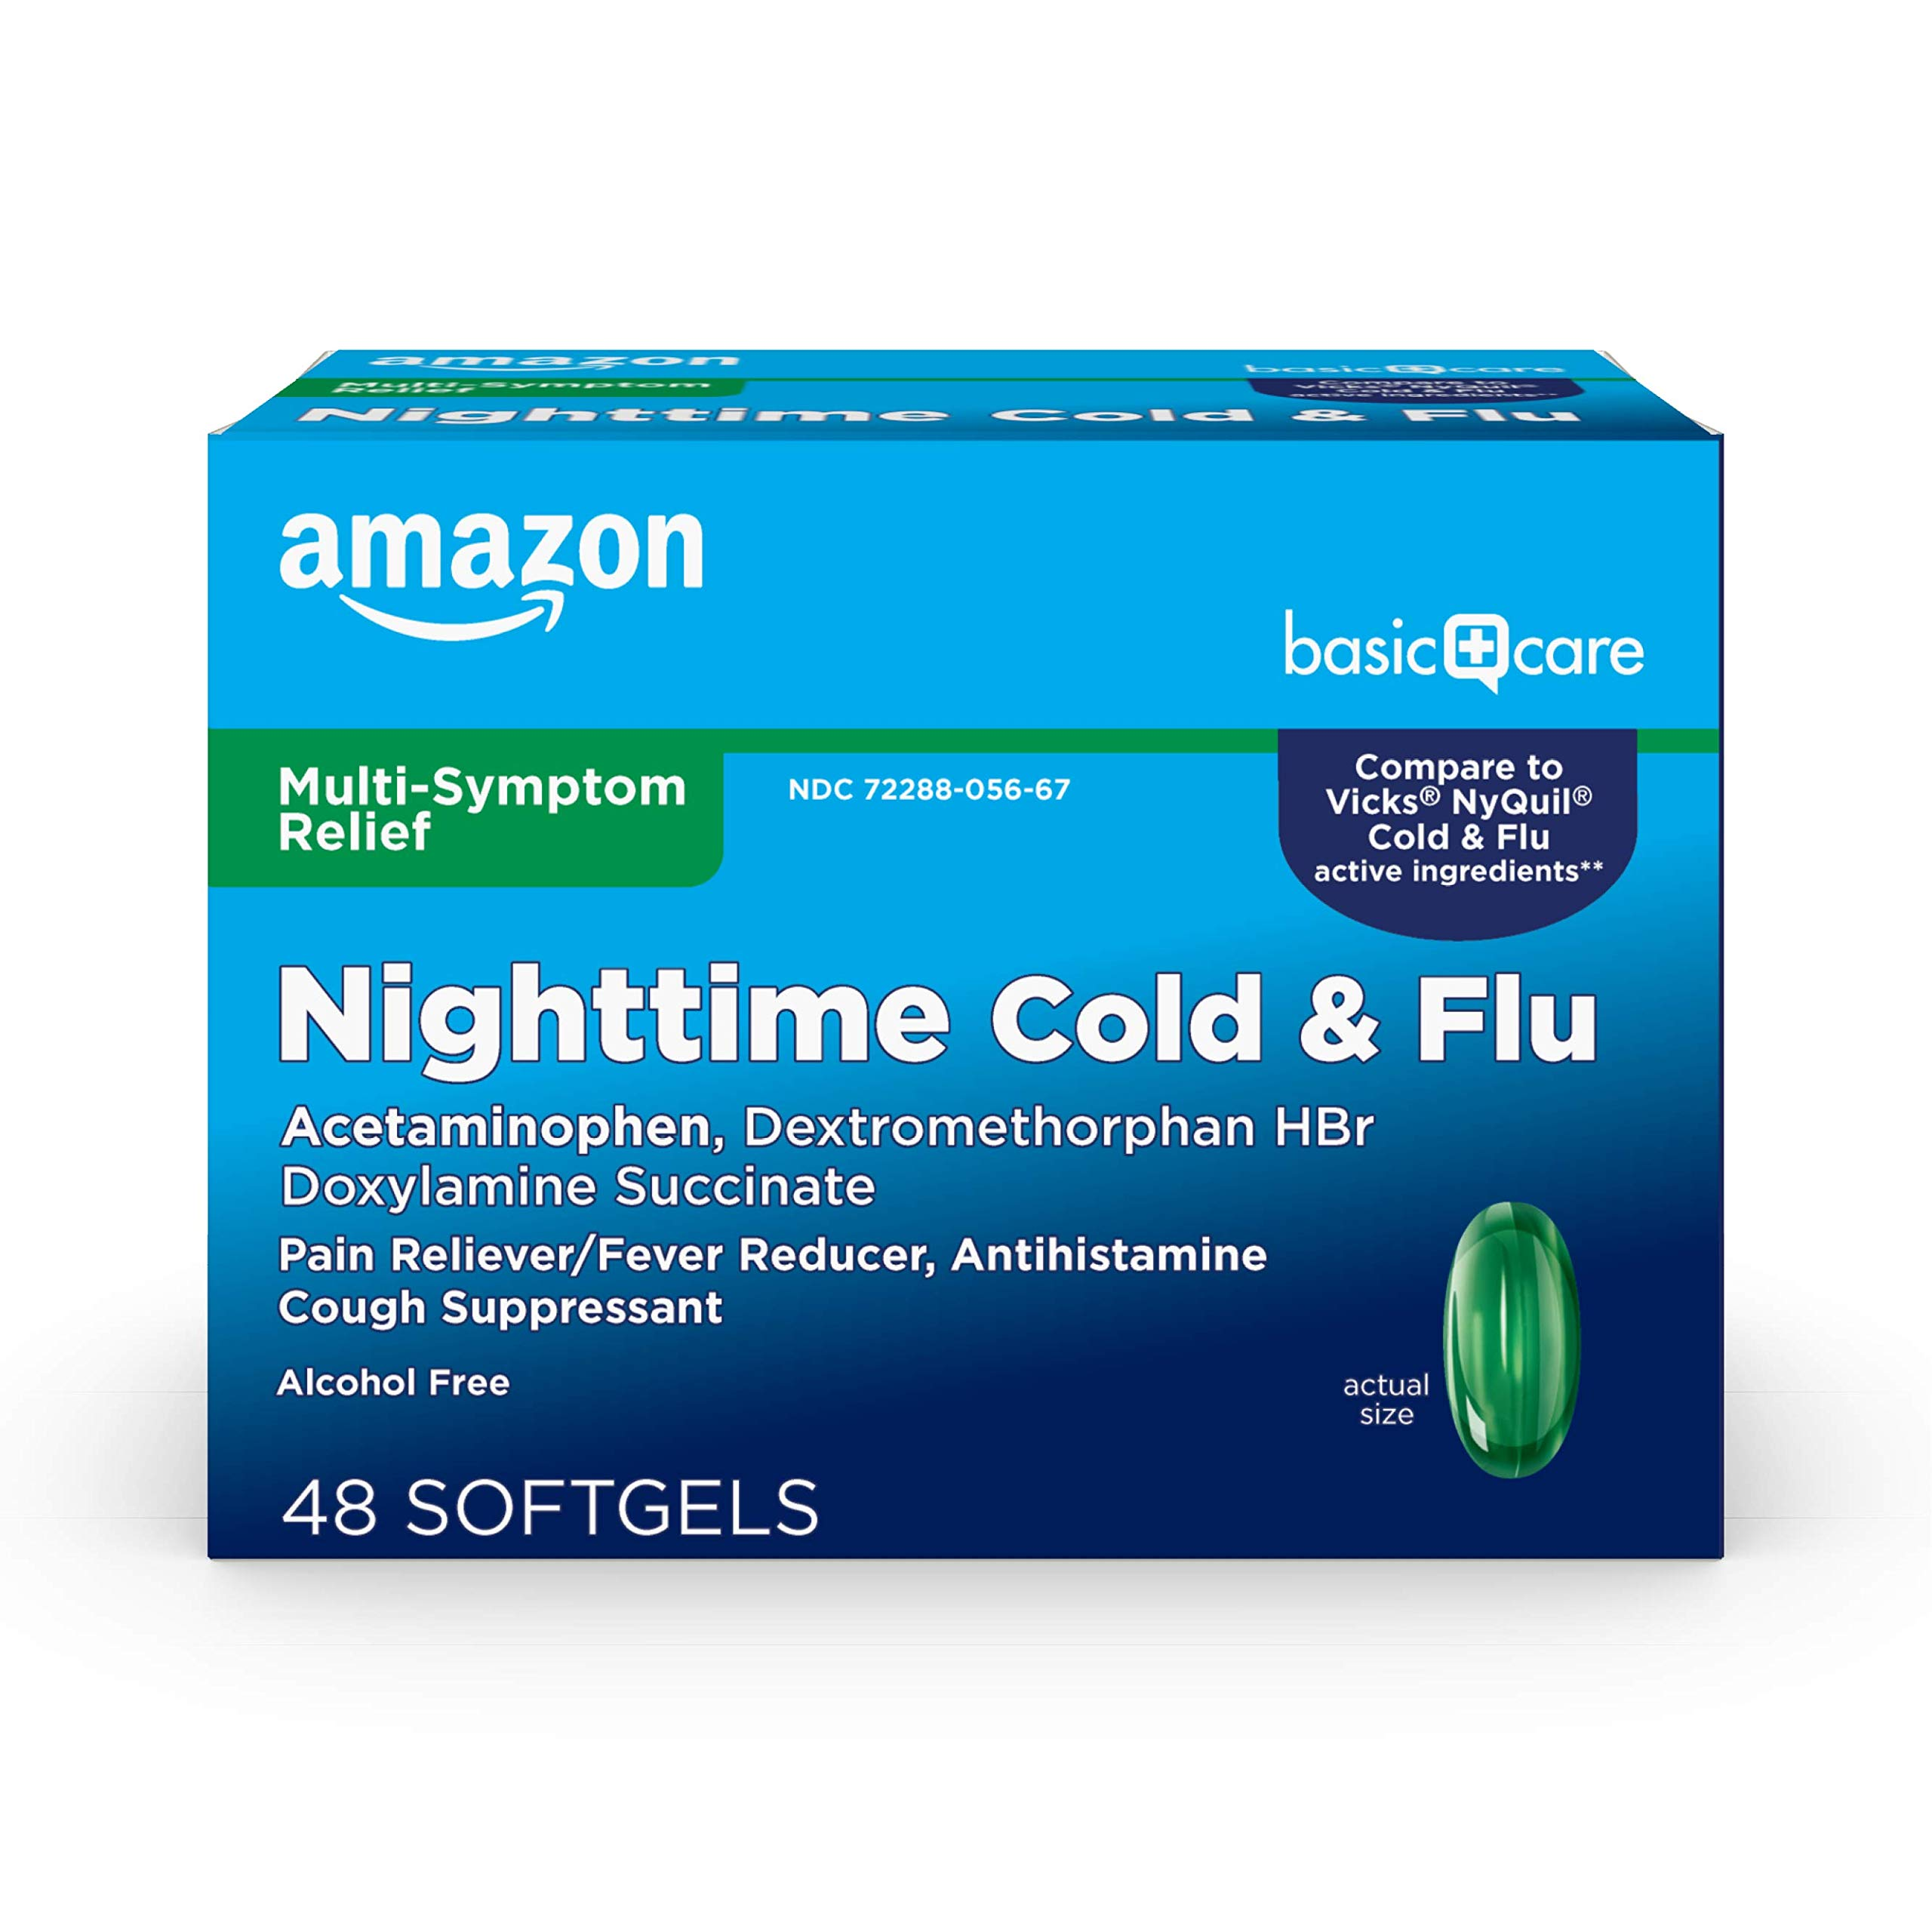 Amazon Basic Care Nite Time Cold Flu Relief Softgels, Pain Reliever, Fever Reducer, Cough Suppressant Antihistamine, 48 Count